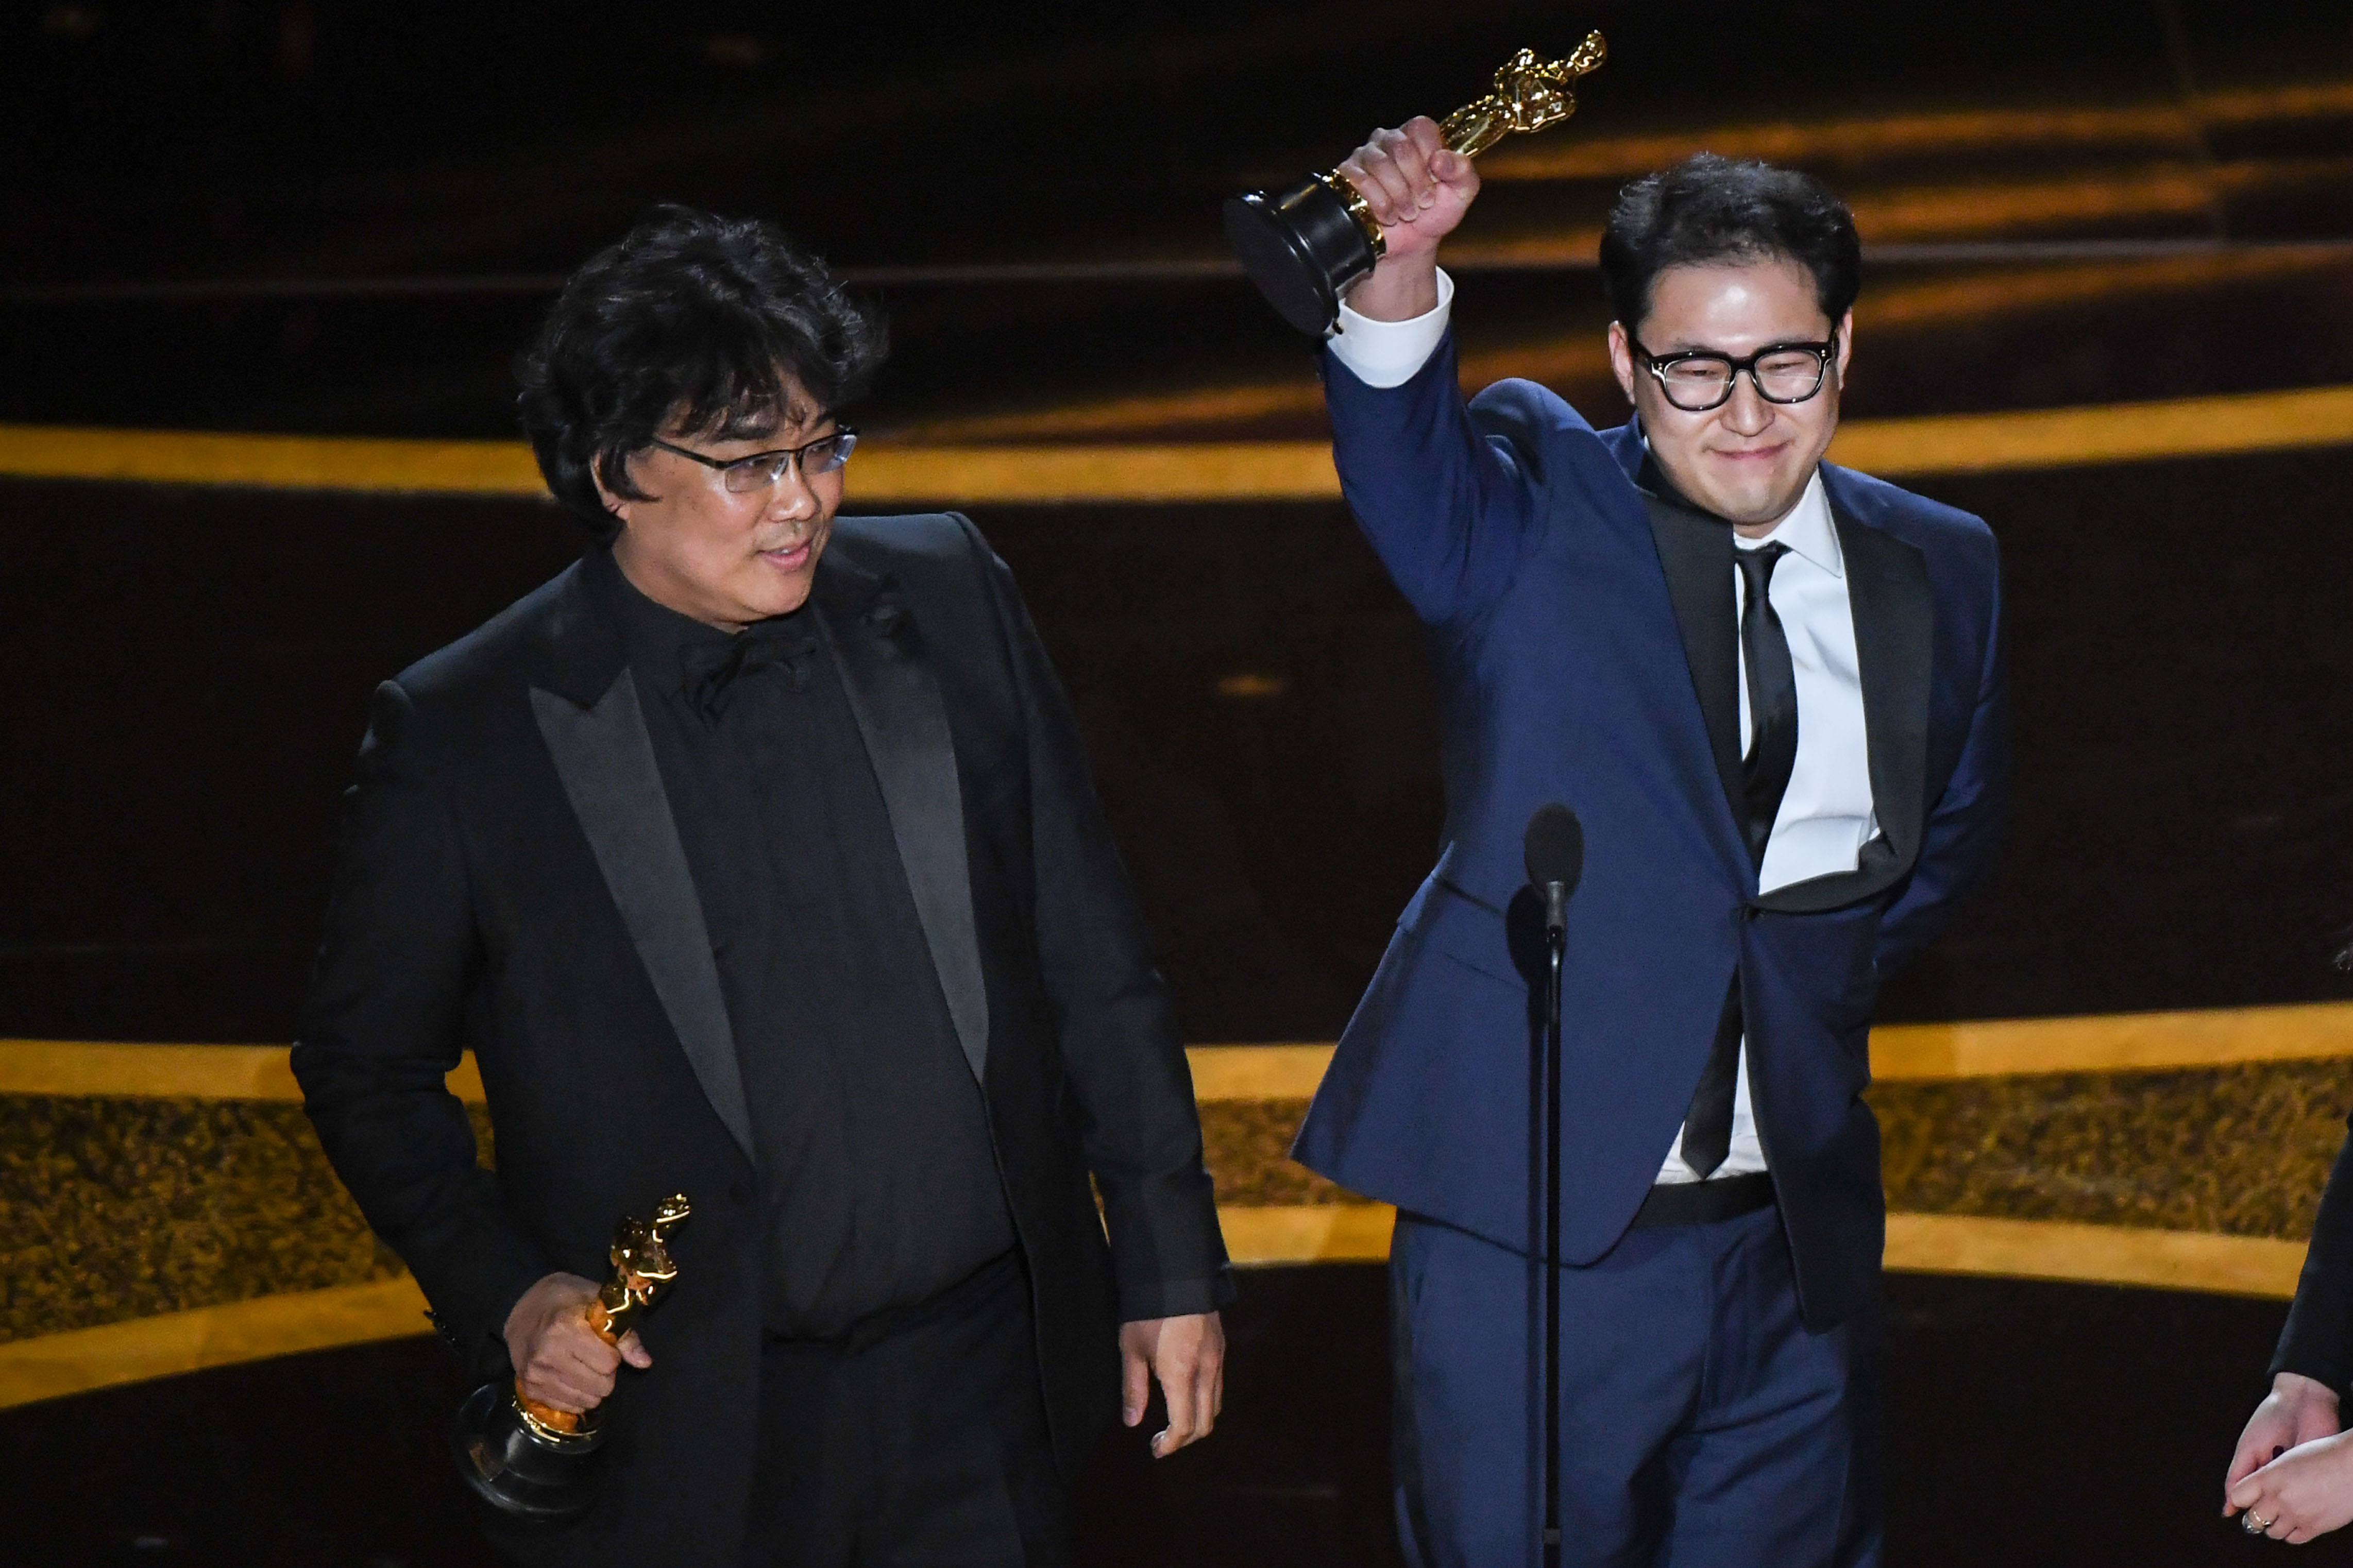 Bong Joon Ho and Jin-won Han at an event for The Oscars (2020)